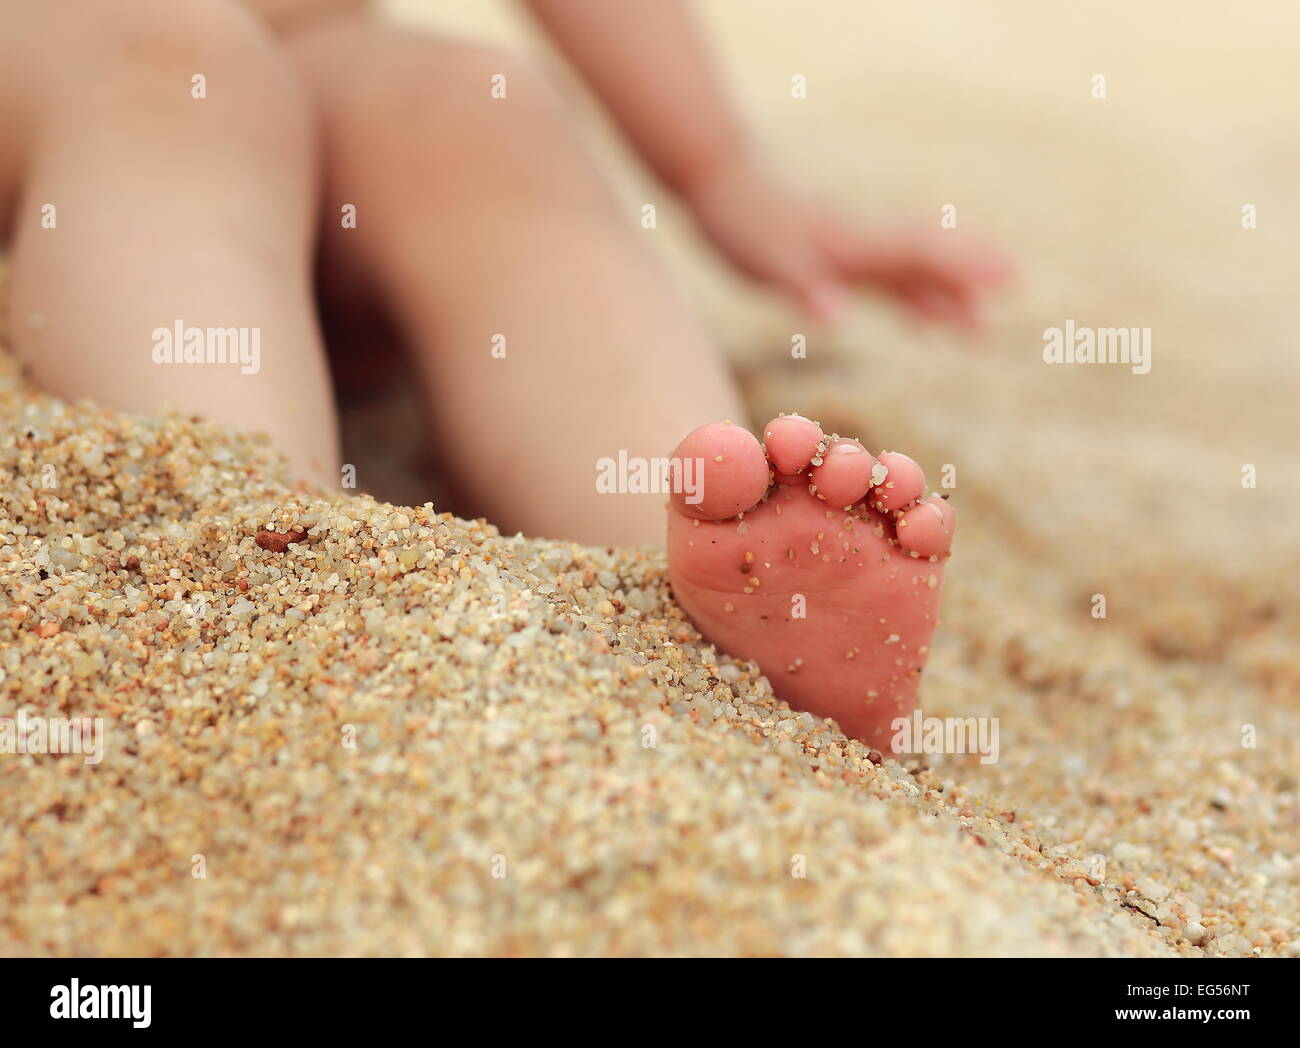 Small baby feet on the sand background - Stock Image